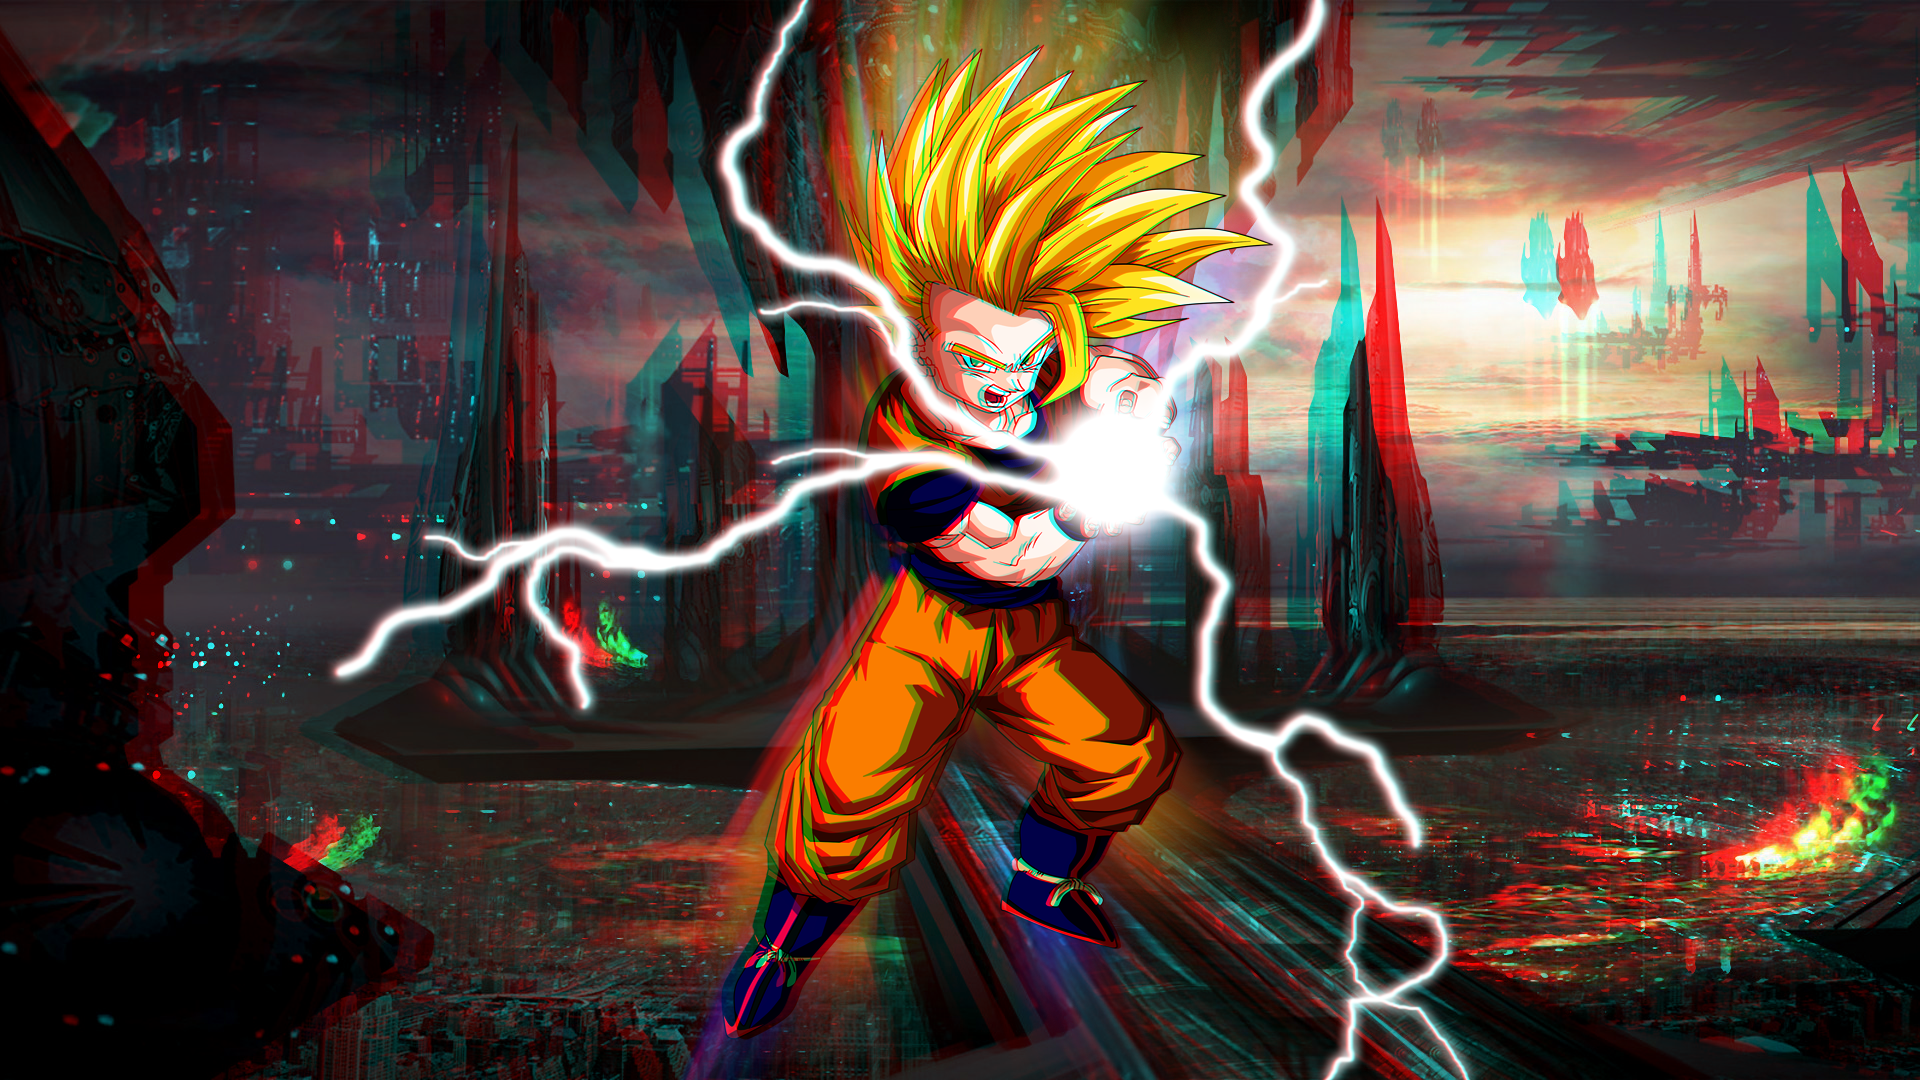 Super Saiyan 2 Gohan 3d 1080p By Boeingfreak On Deviantart